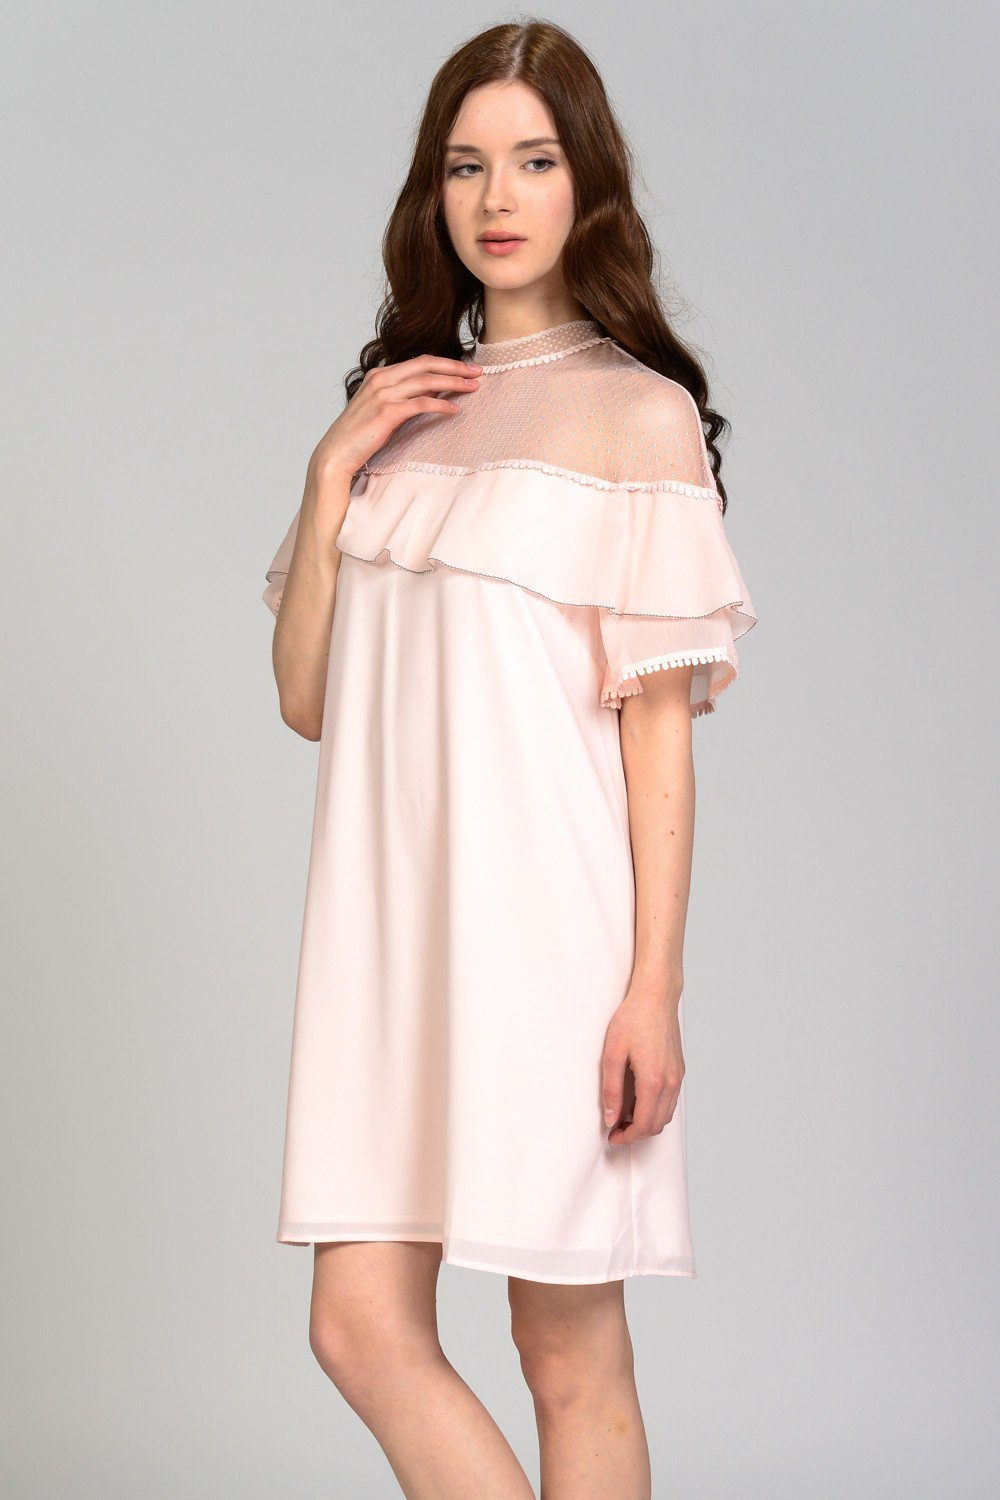 Antoniette Sheer Ruffle Detail Dress